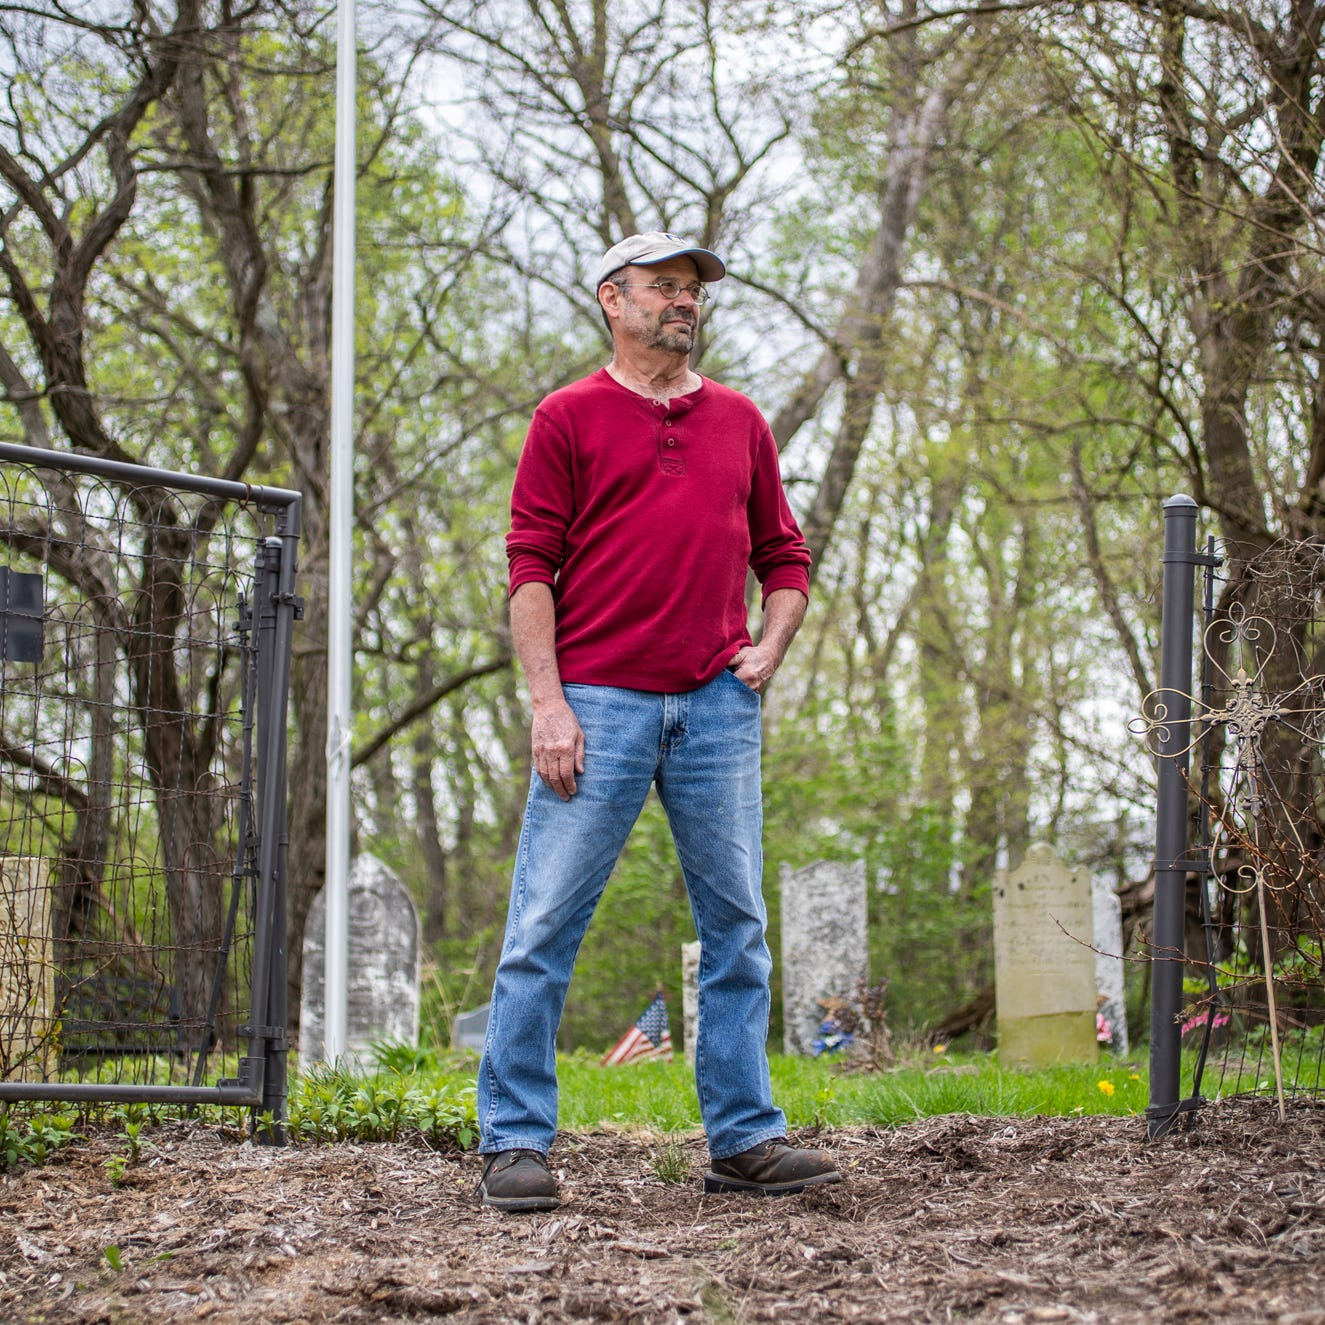 'Known only to God': A Hoosier confronts family legends of slaveholding ancestors